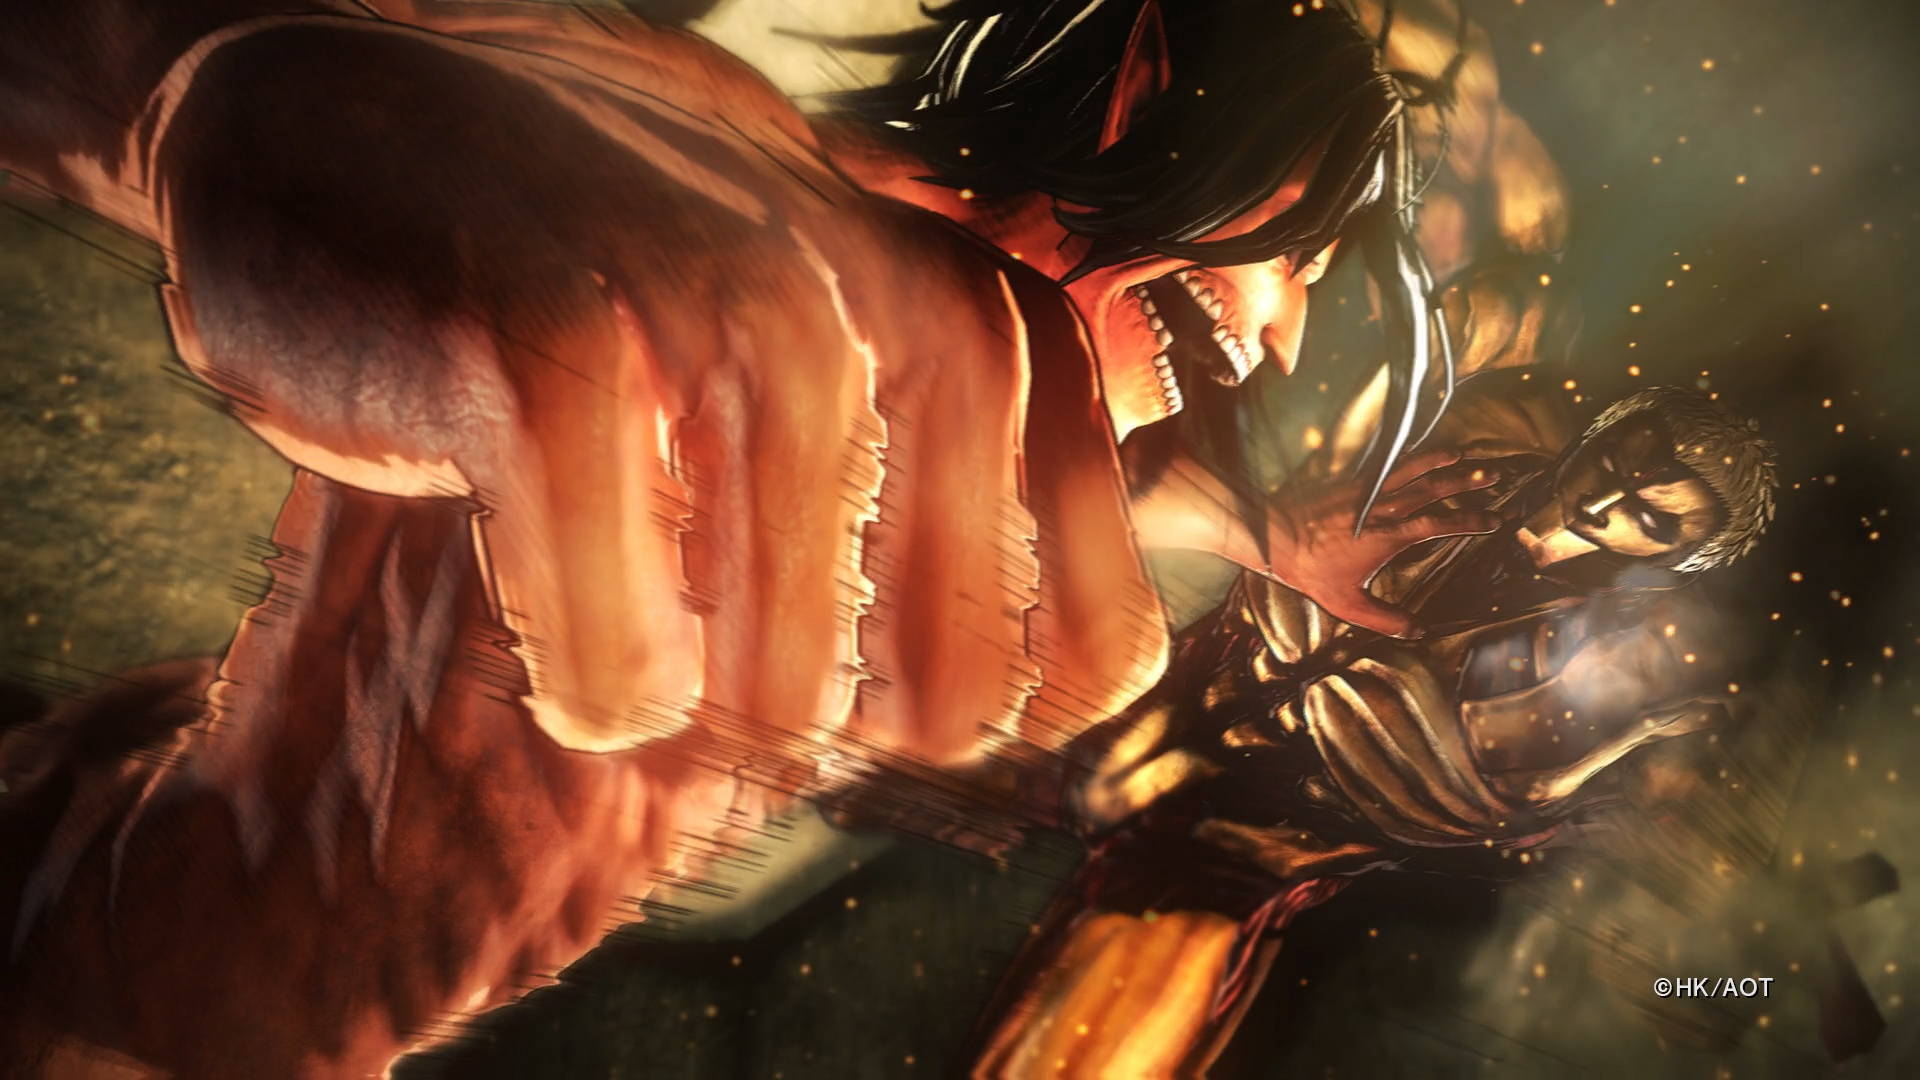 aot2_images4_0023